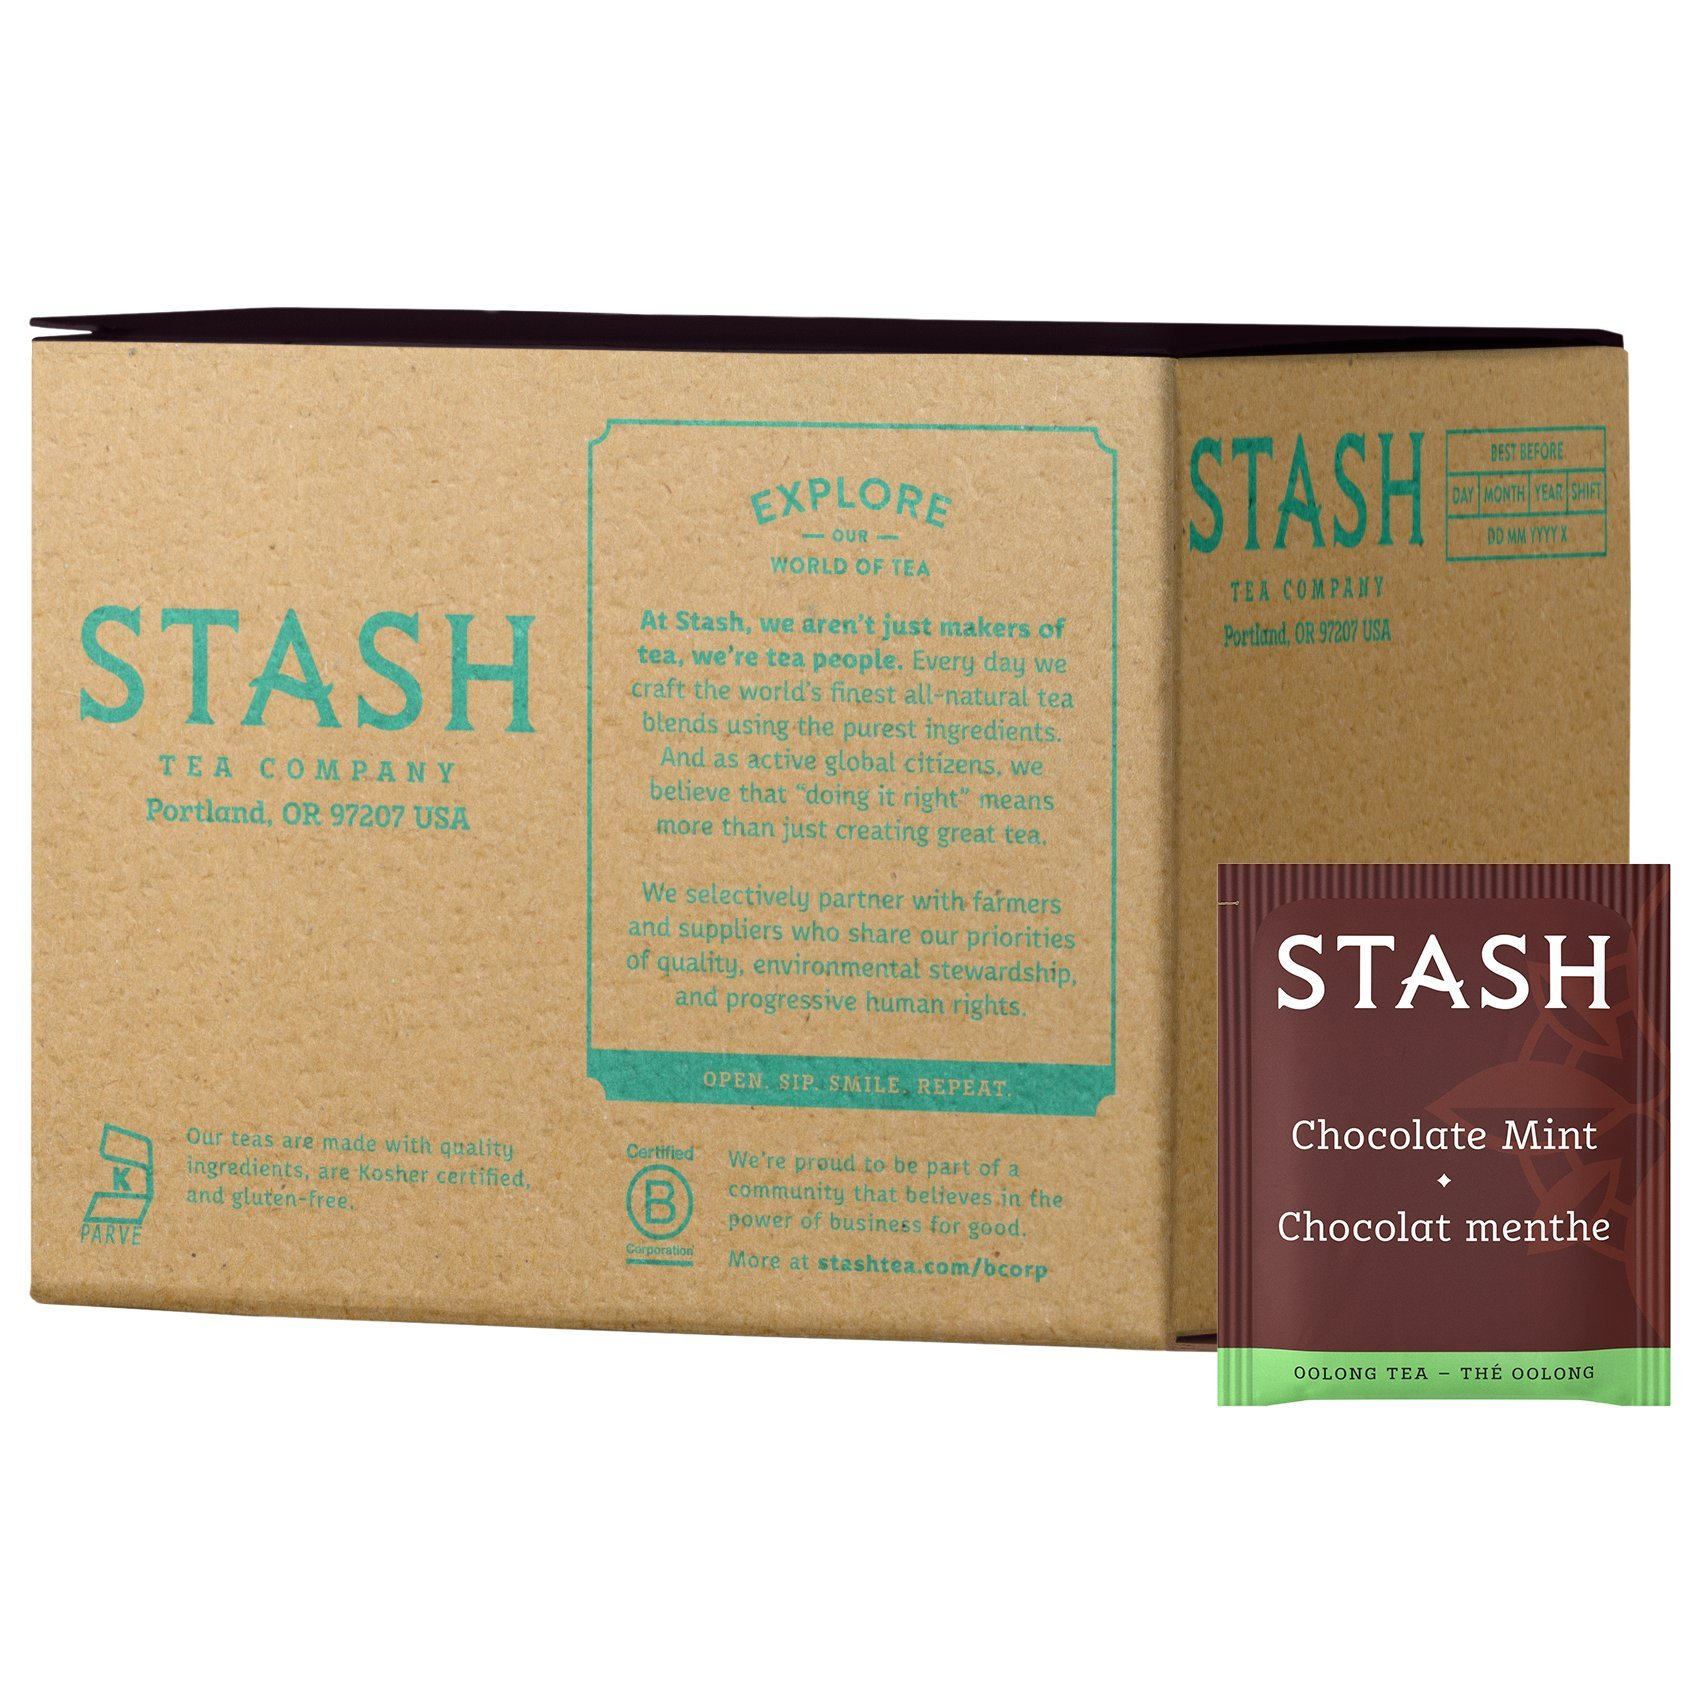 Stash Tea Chocolate Mint Wuyi Oolong Tea 100 Count Tea Bags in Foil (packaging may vary) Individual Black Tea Bags for Use in Teapots Mugs or Cups, Brew Hot Tea or Iced Tea, Fair Trade Certified